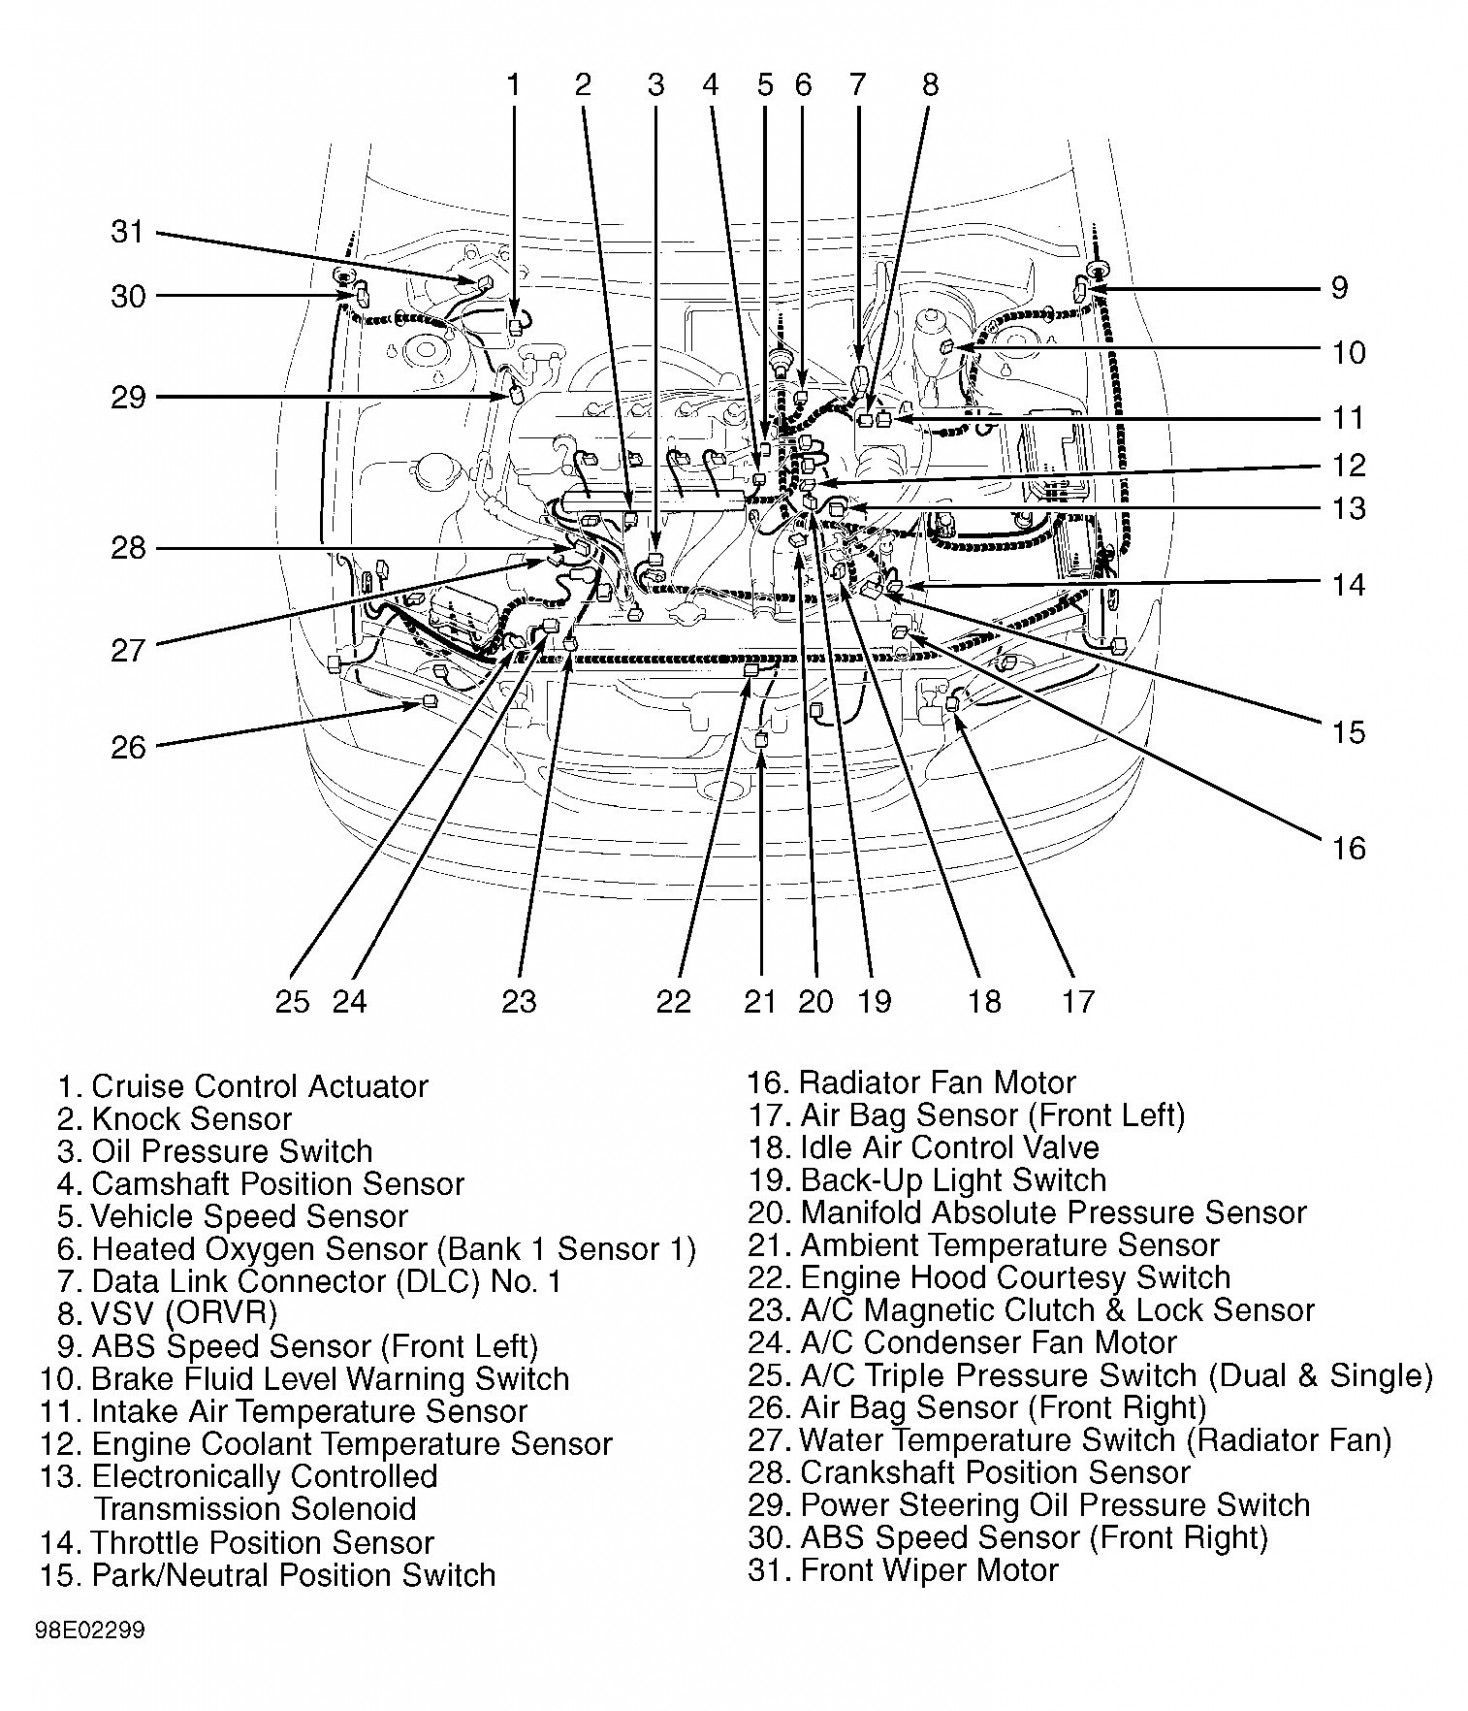 4 Toyota Corolla Engine Parts Diagram 4 Toyota Corolla Engine Parts Diagram